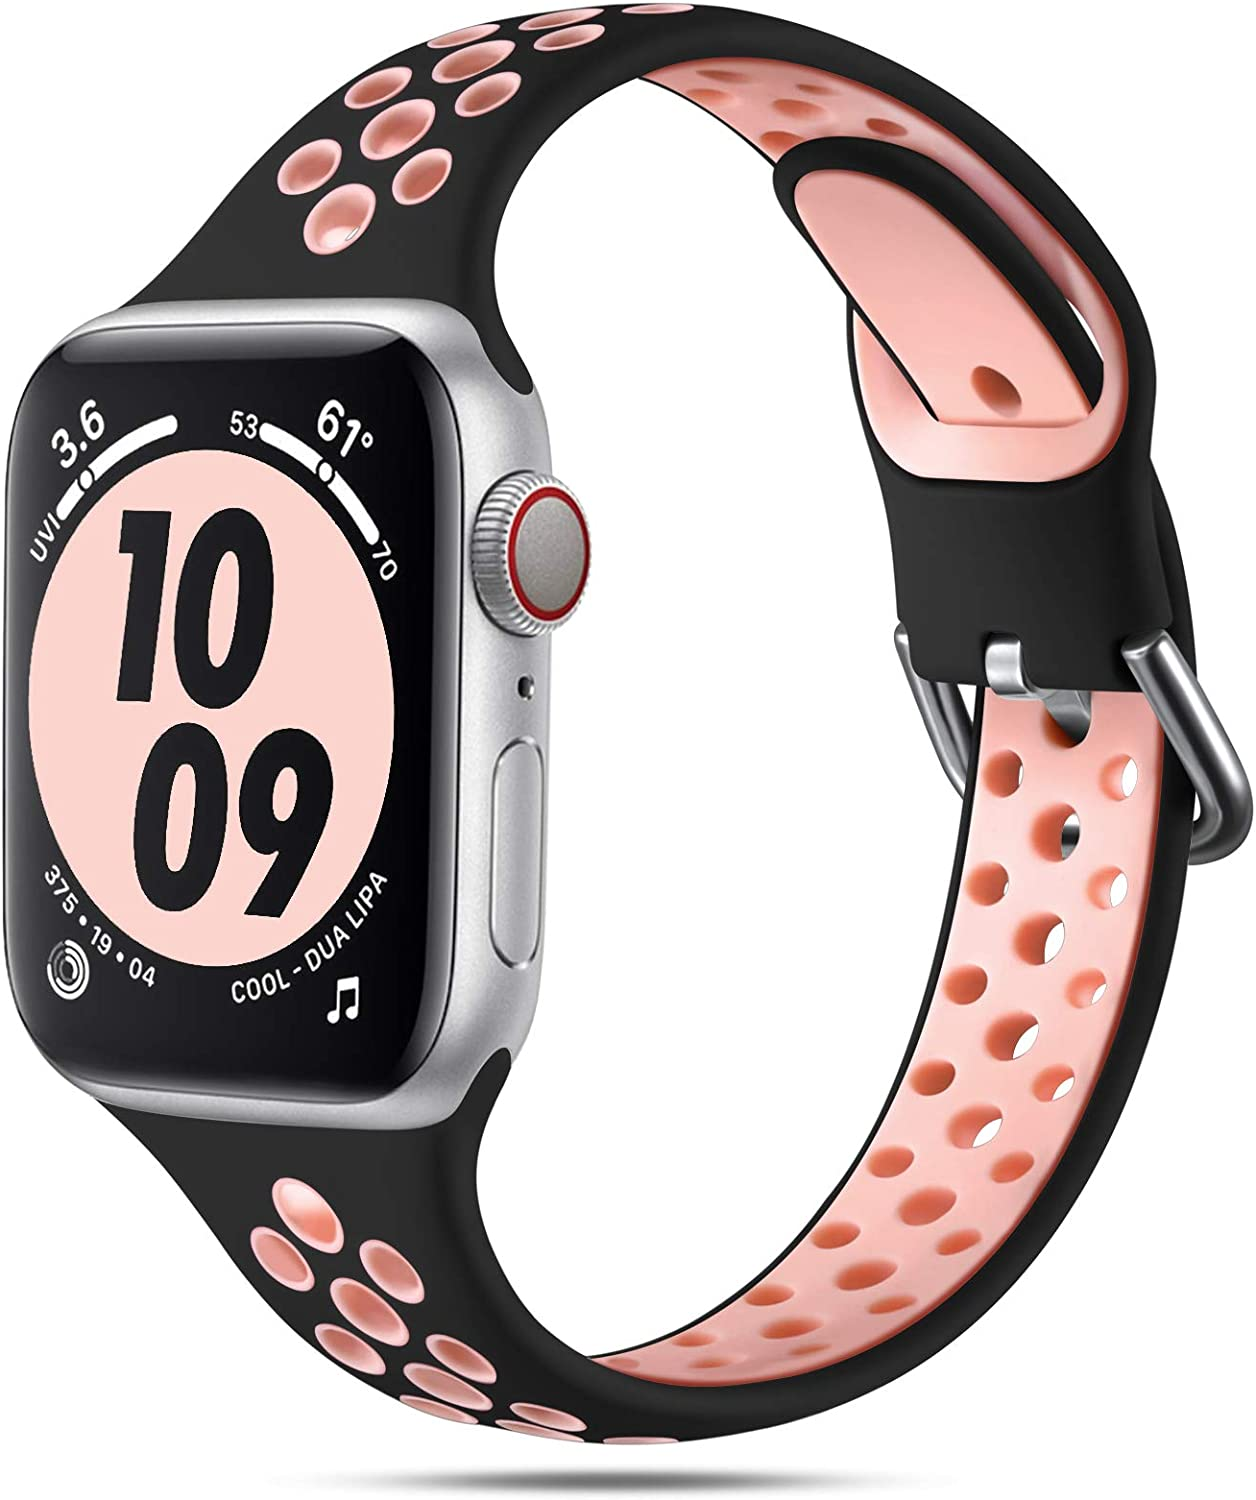 Henva Compatible with Apple Watch Band 38mm 40mm for Women Girls, Slim Soft Breathable Silicone Sport Band with Air Holes Compatible for iWatch Series SE/6/5/4/3/2/1, Black/Pink